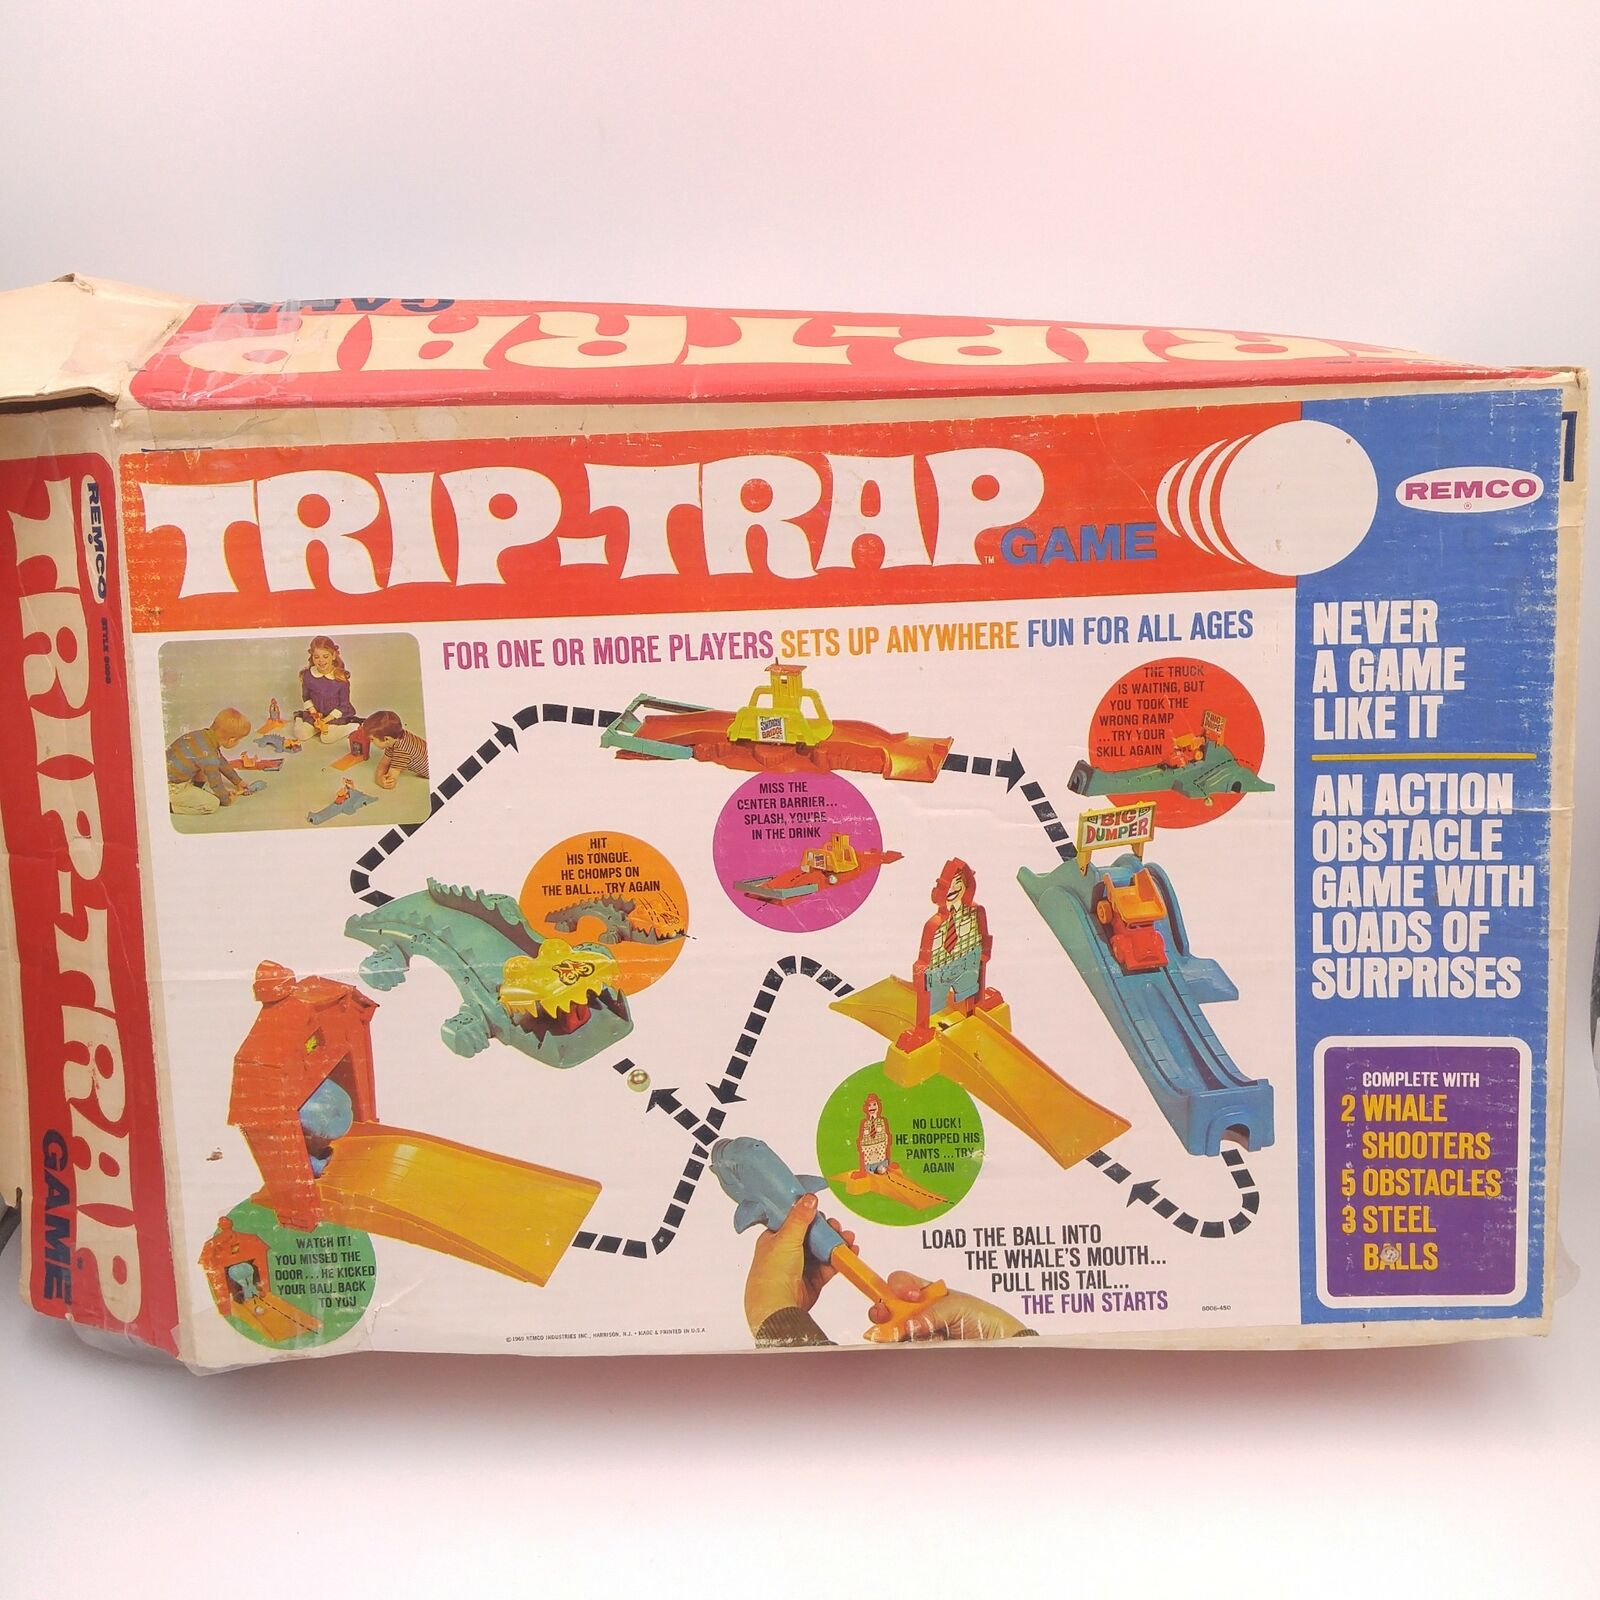 Vintage Trip-Trap Board game action obstacle - 1969 Remco - 100% complet